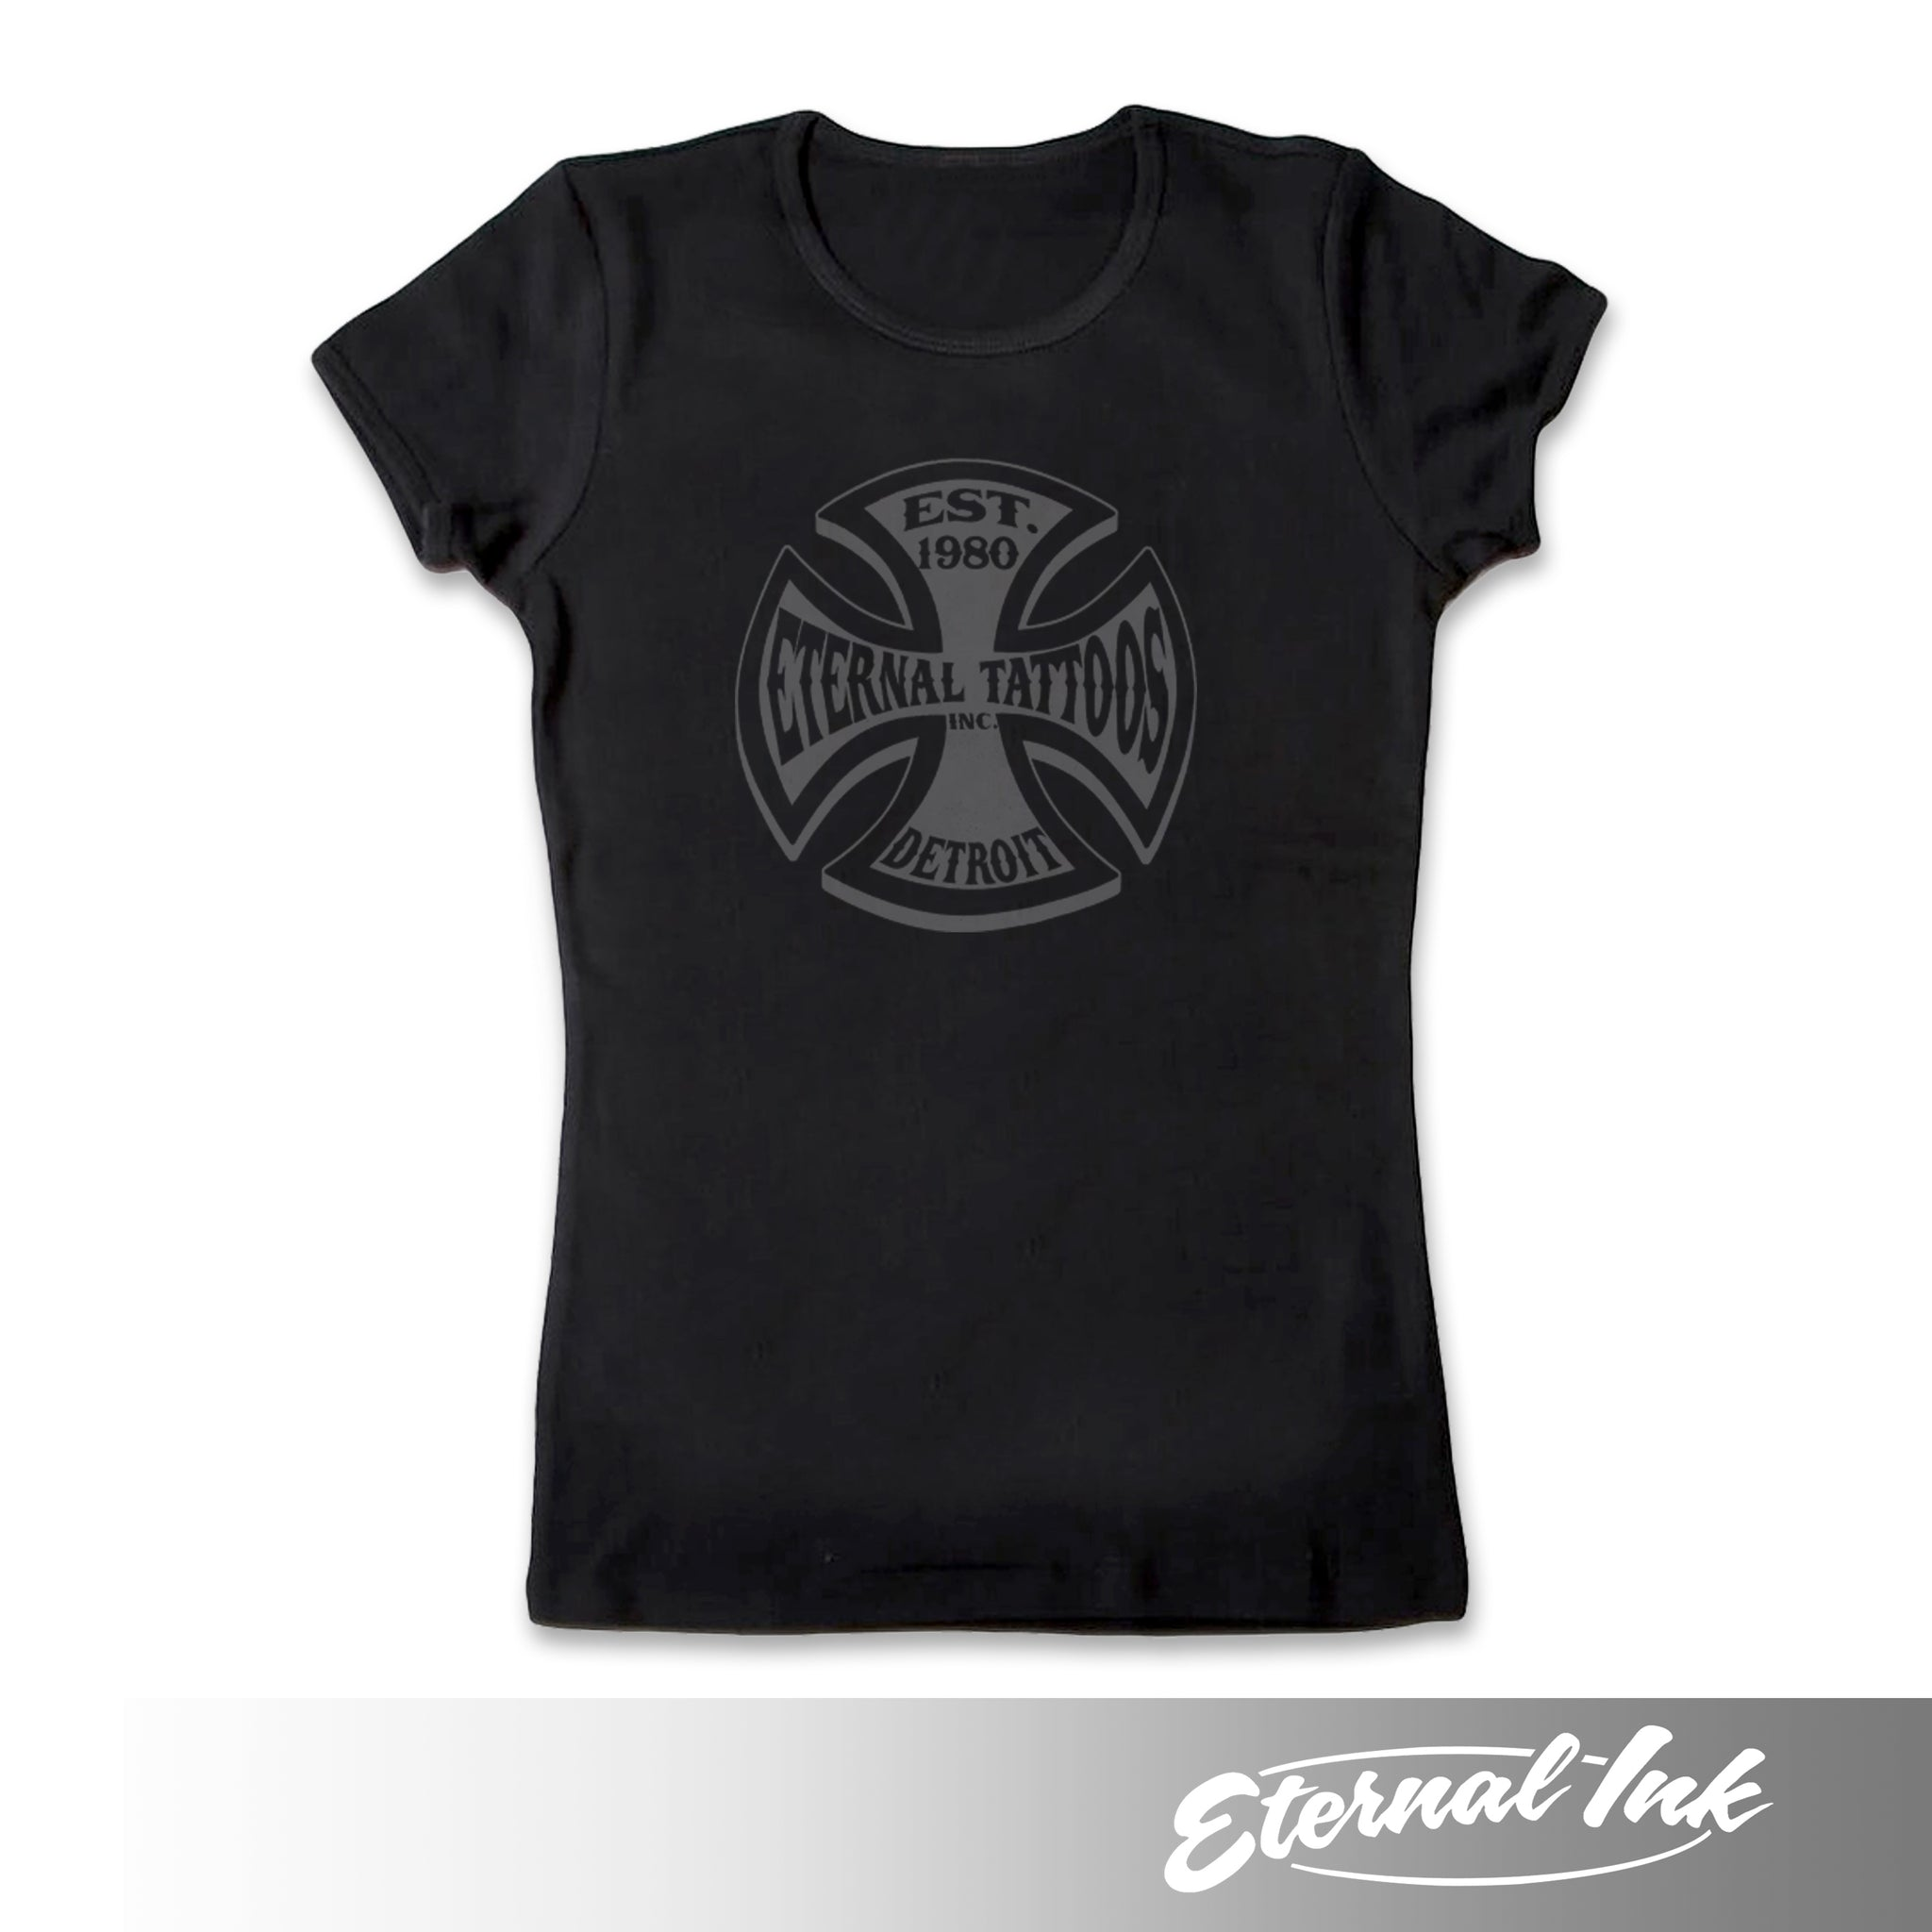 Eternal Tattoos Detroit Womens Tshirt